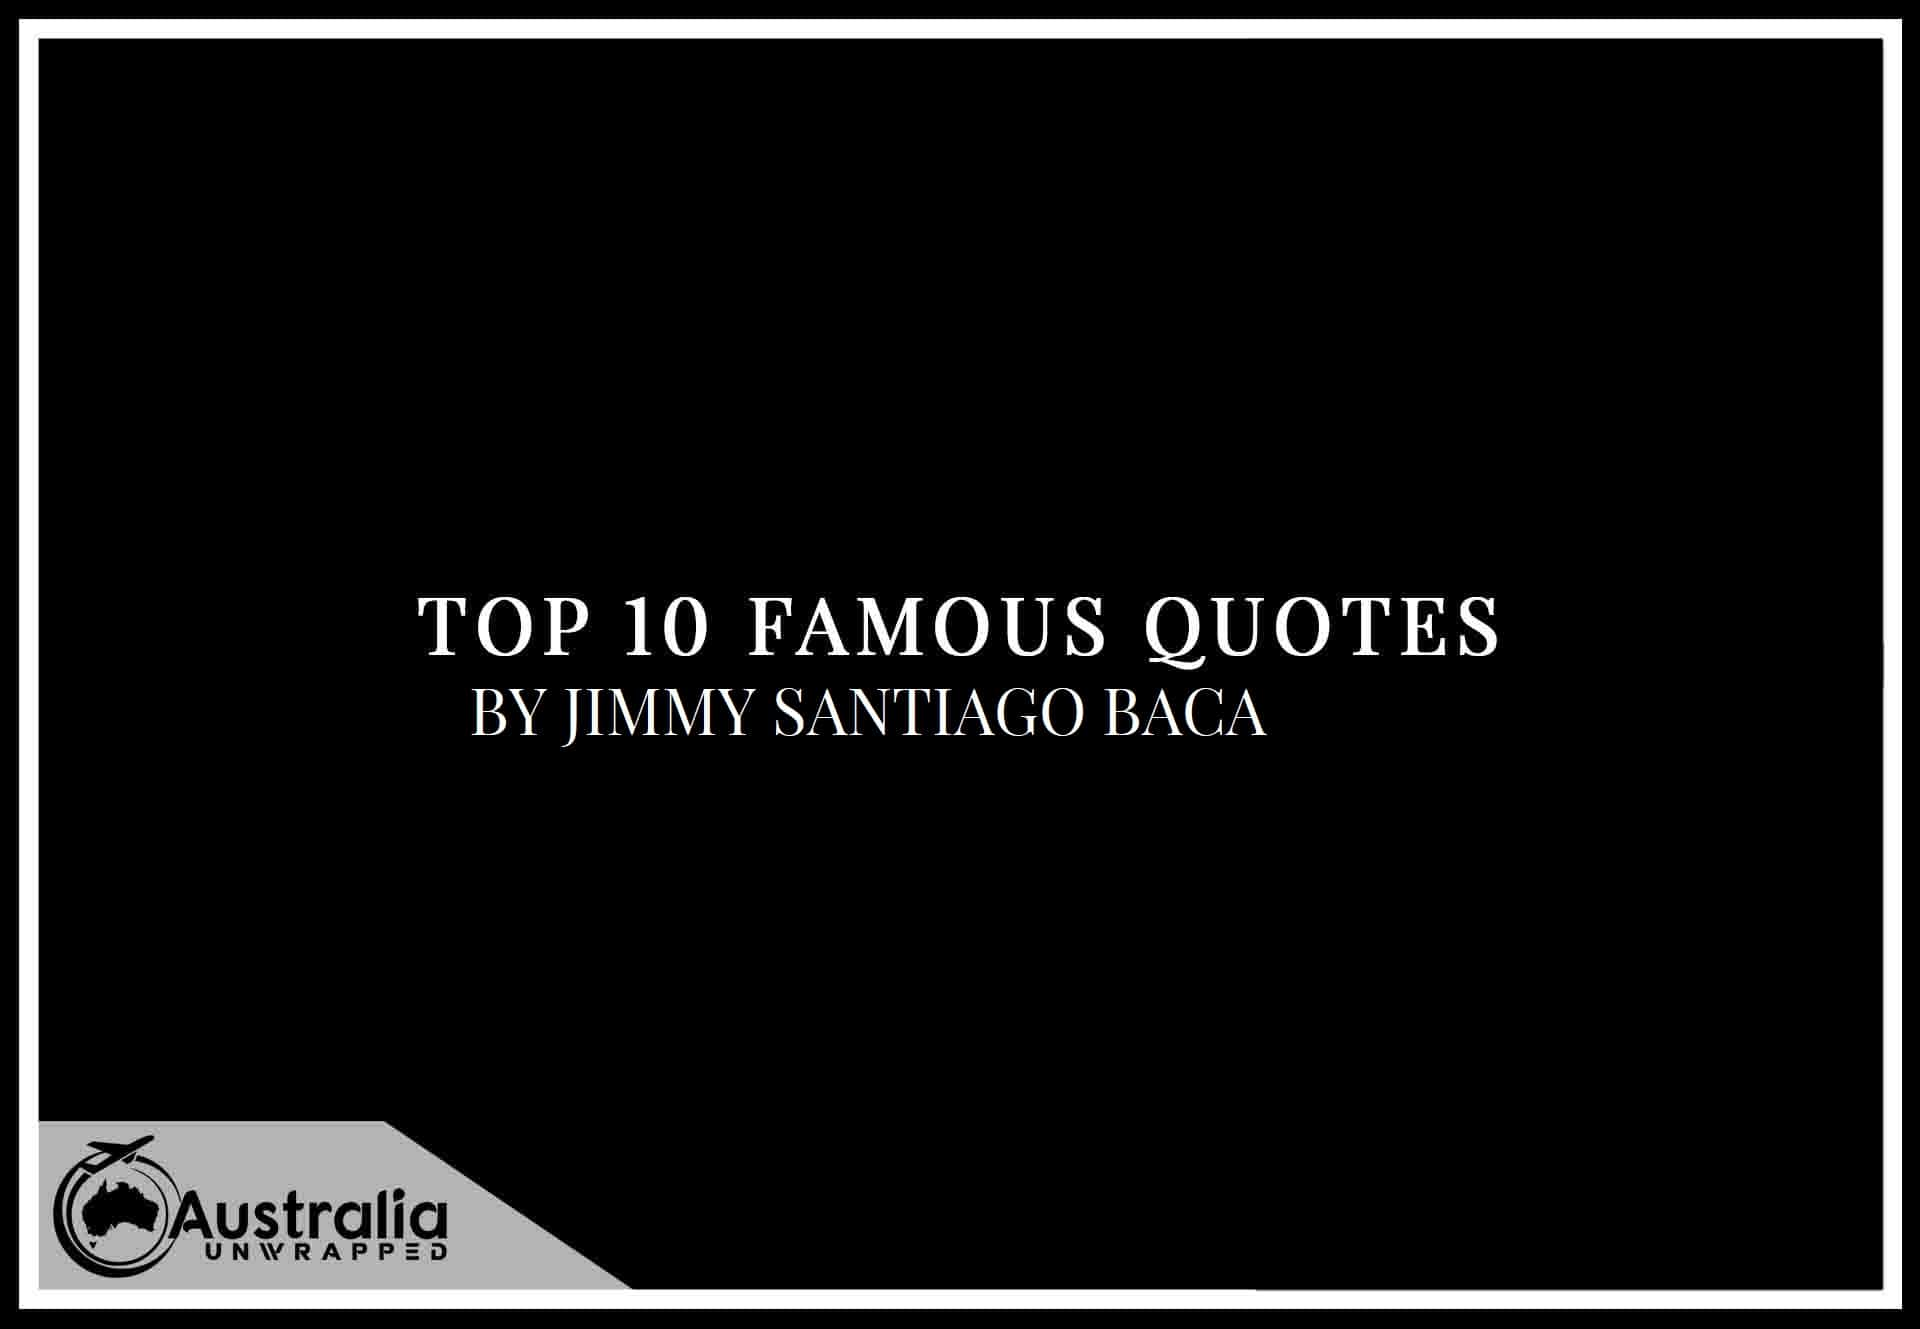 Top 10 Famous Quotes by Author Jimmy Santiago Baca